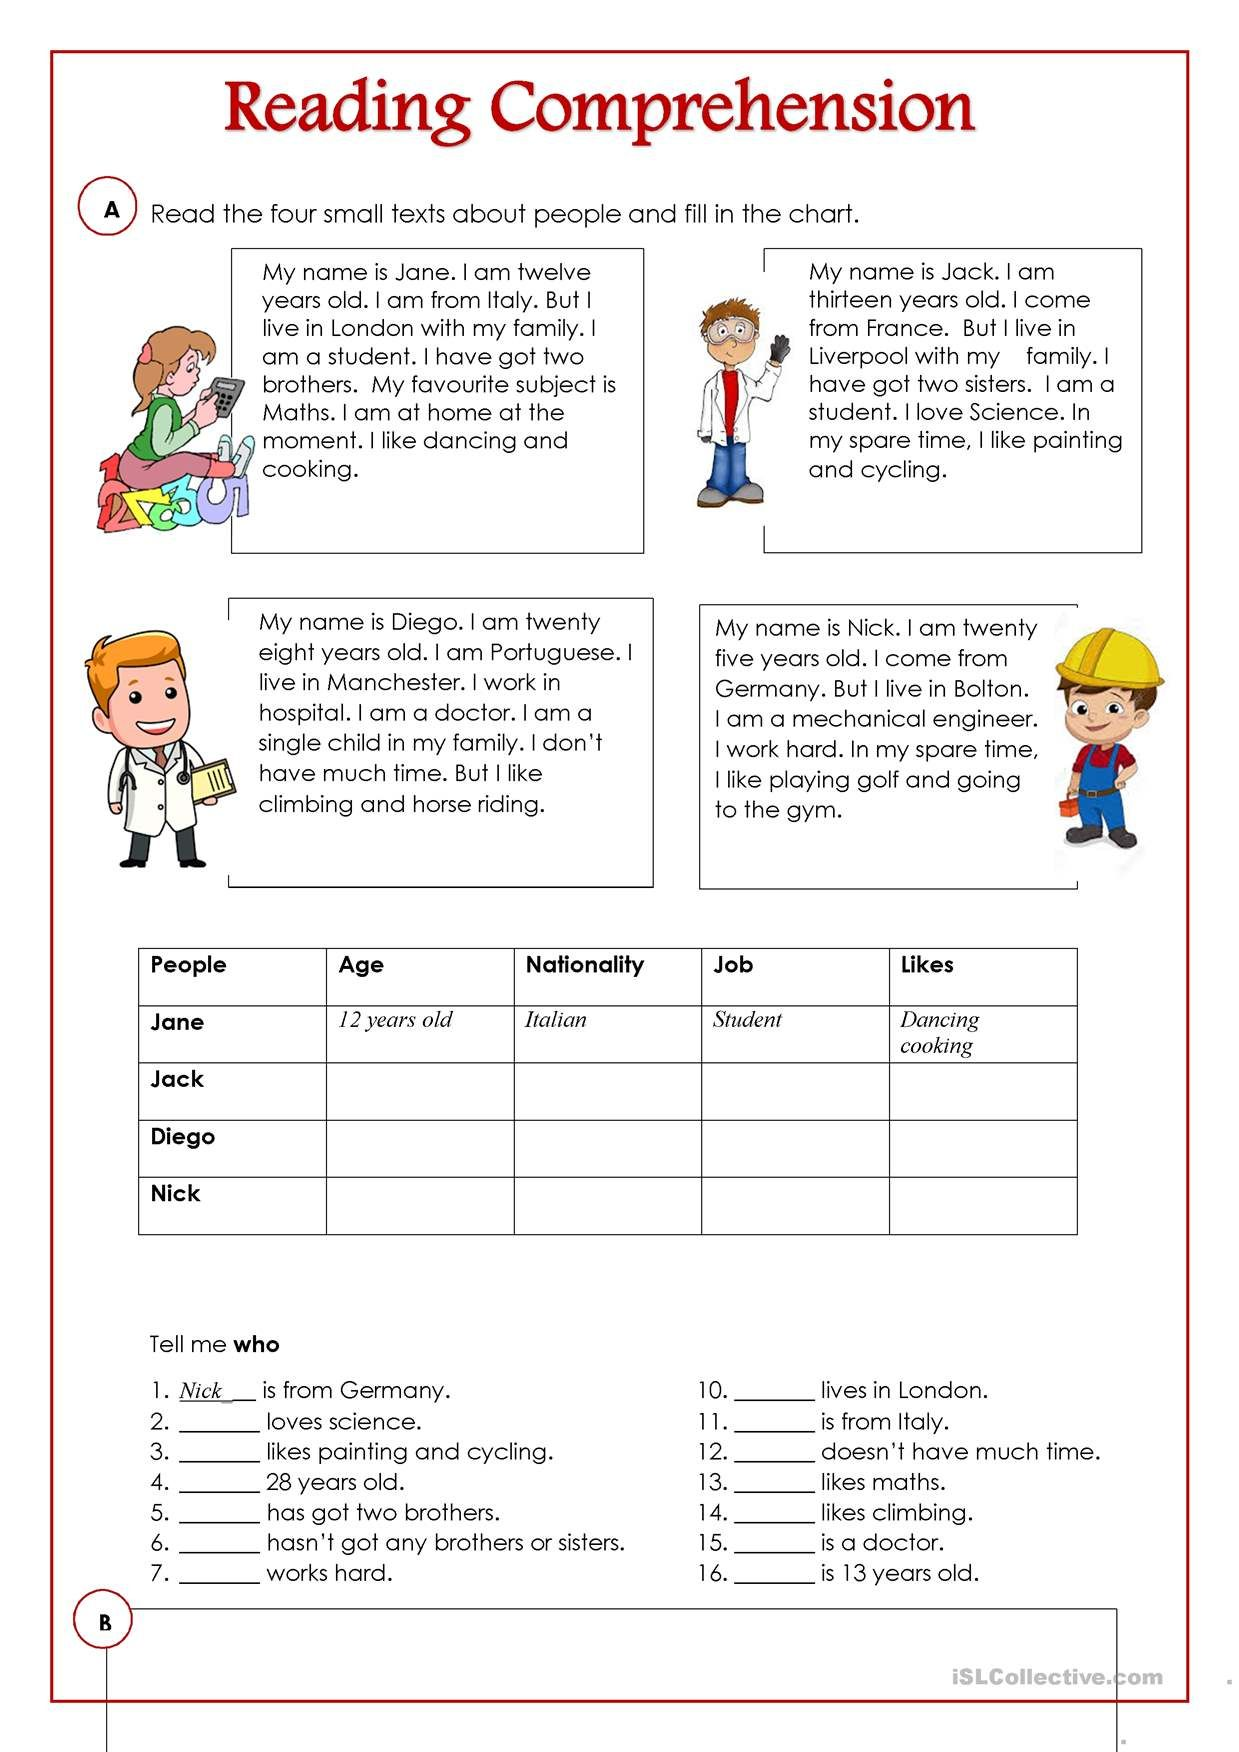 Oneclick print document Free reading comprehension